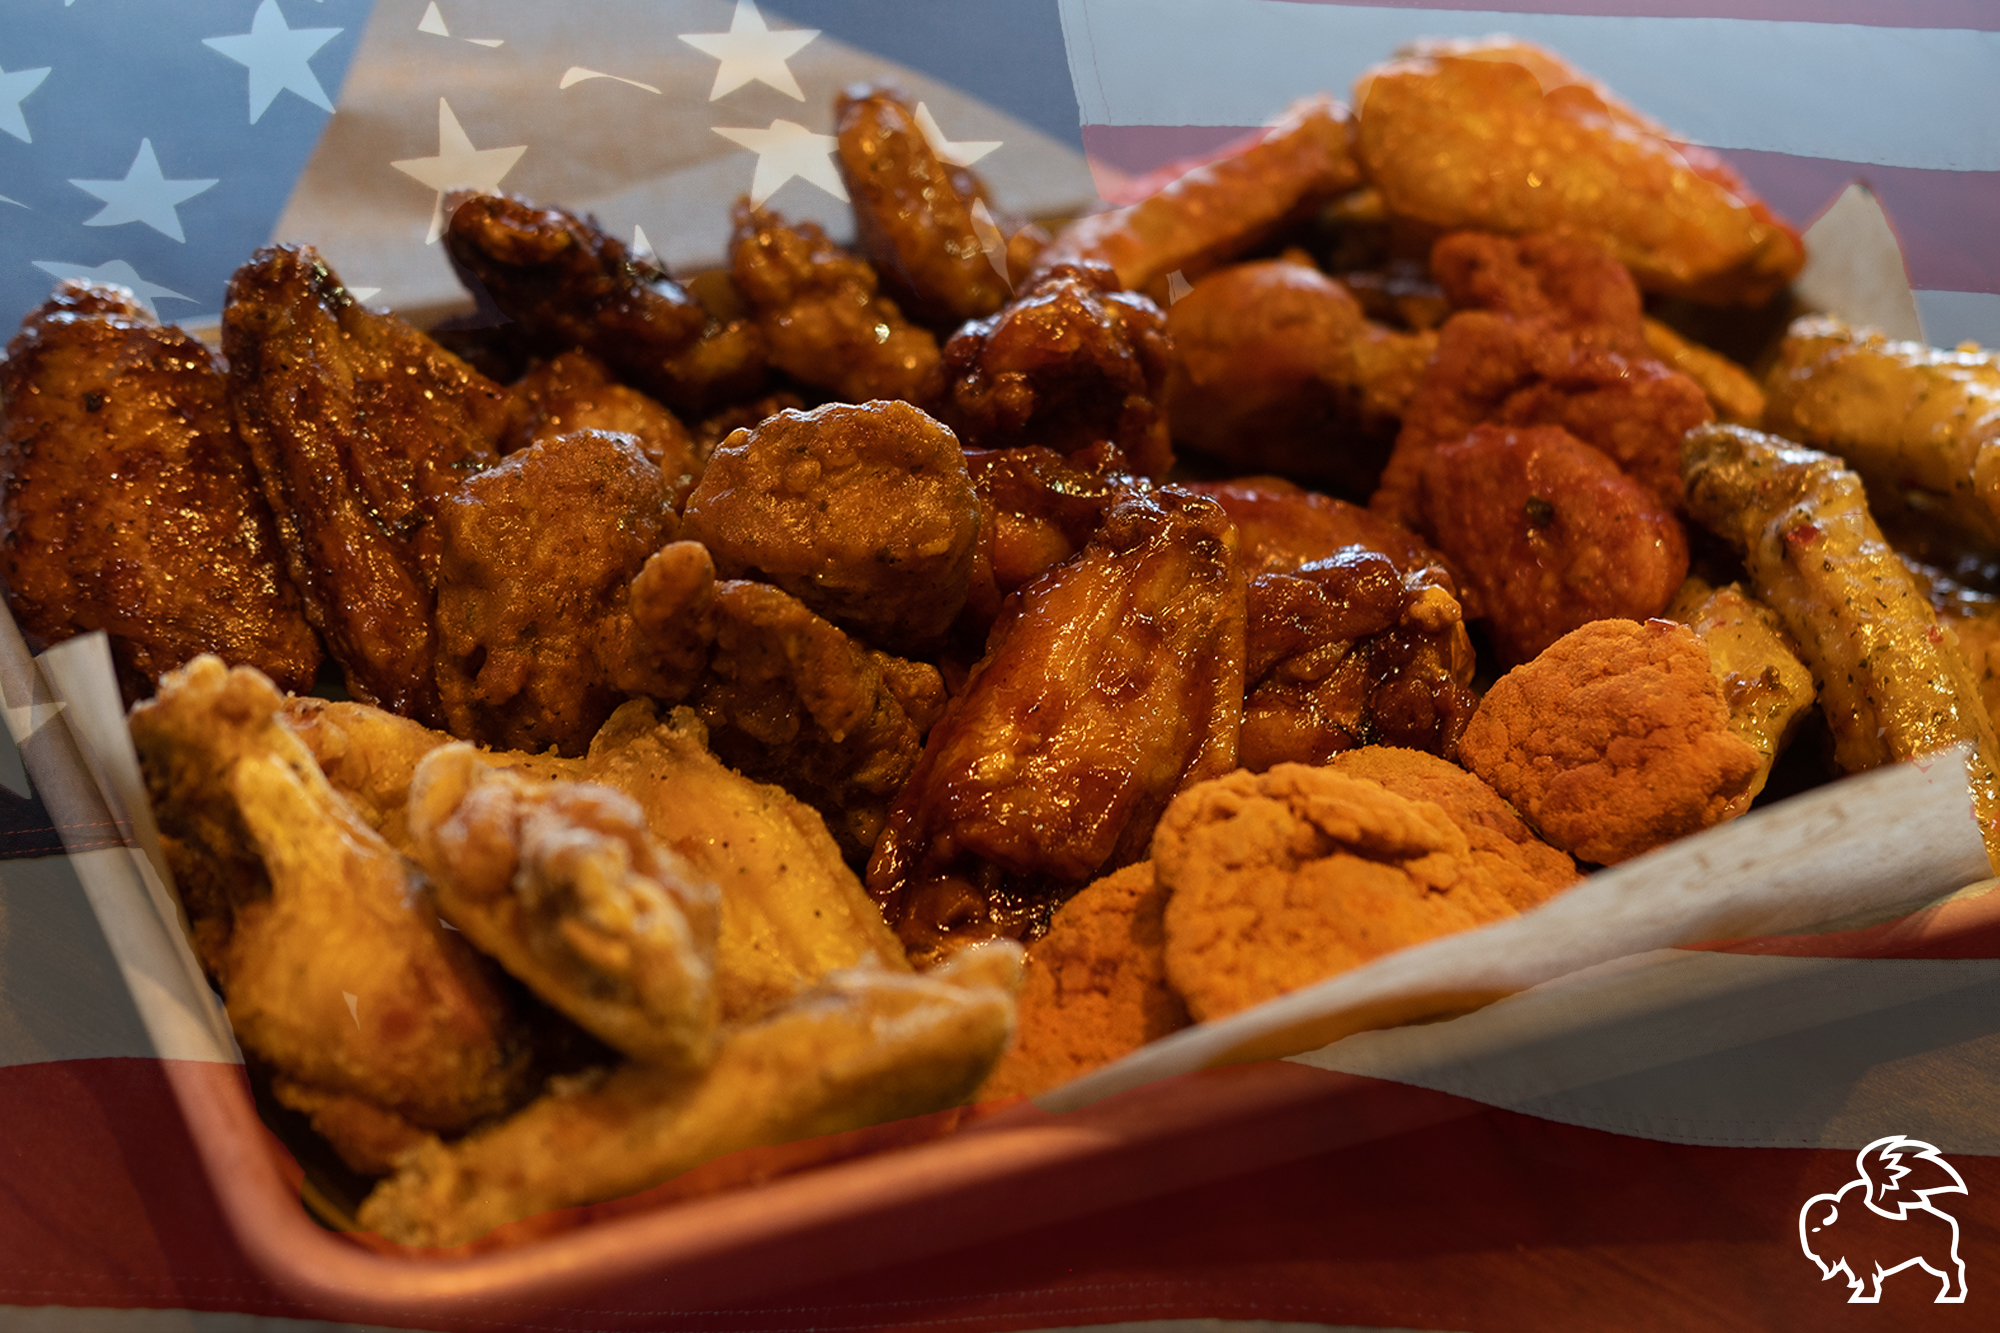 Are Applebees Open On Christmas 2020 In Kansas City Super Bowl 2020 free food, drinks, deals from Buffalo Wild Wings